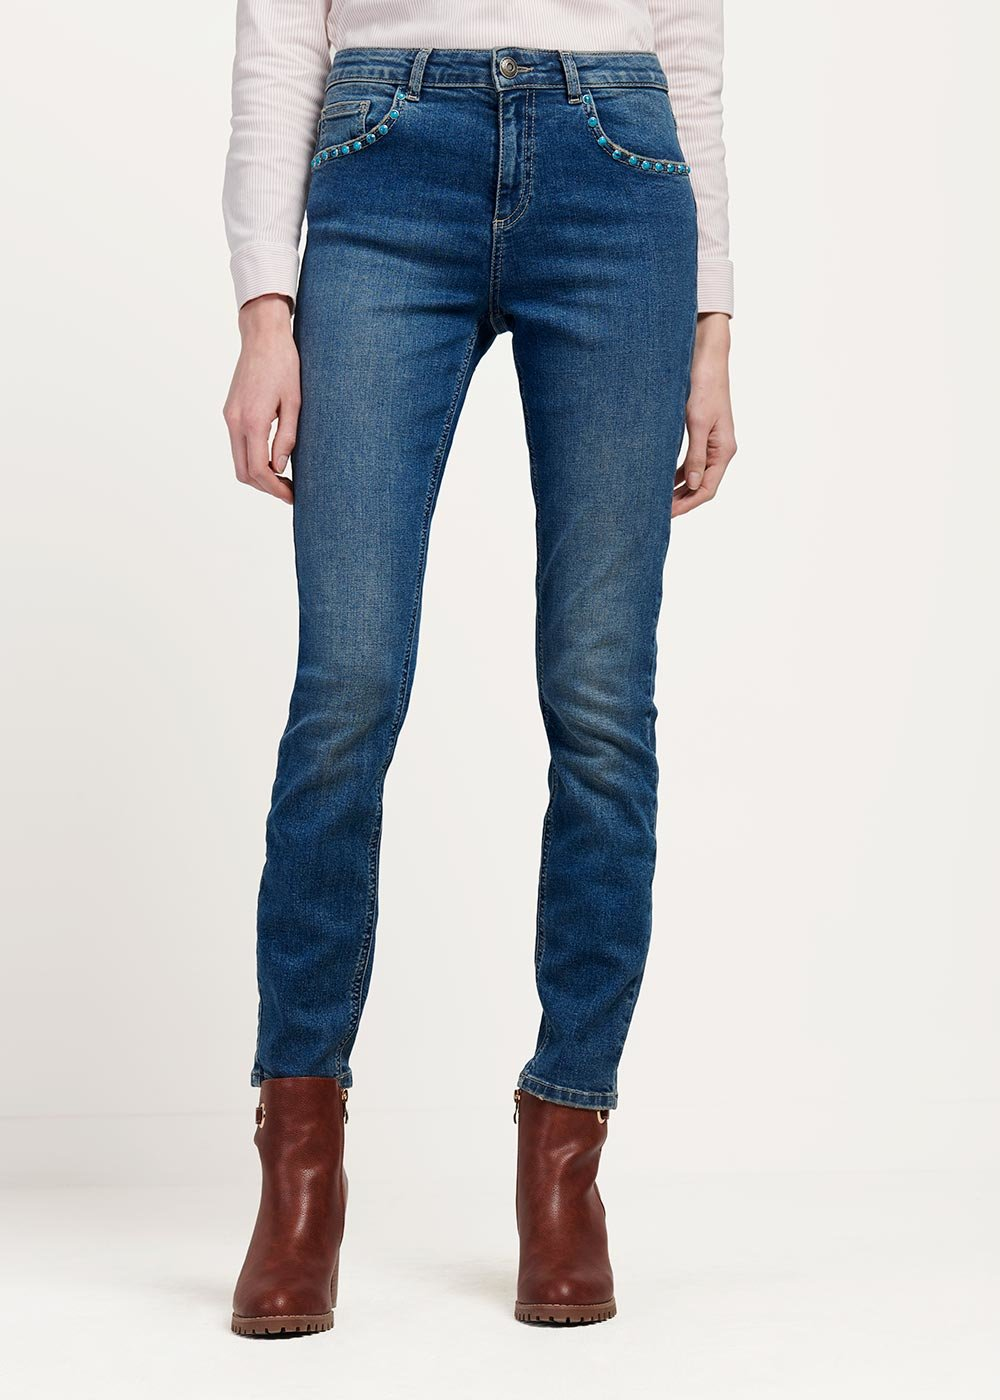 Doris denim with turquoise stones detail - Denim - Woman